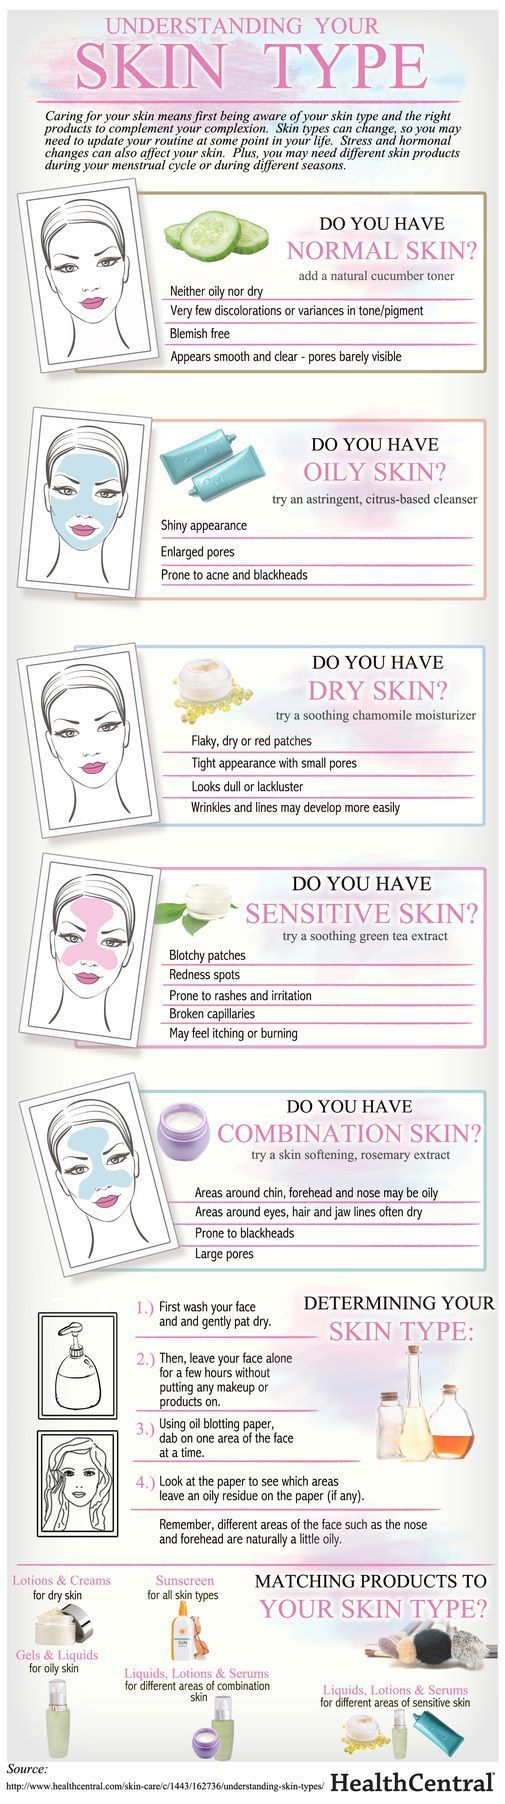 How To Identify Your Skin Type   Get 10% off Herbavana Skincare products using coupon code 'pinterest10' at www.herbavana.com